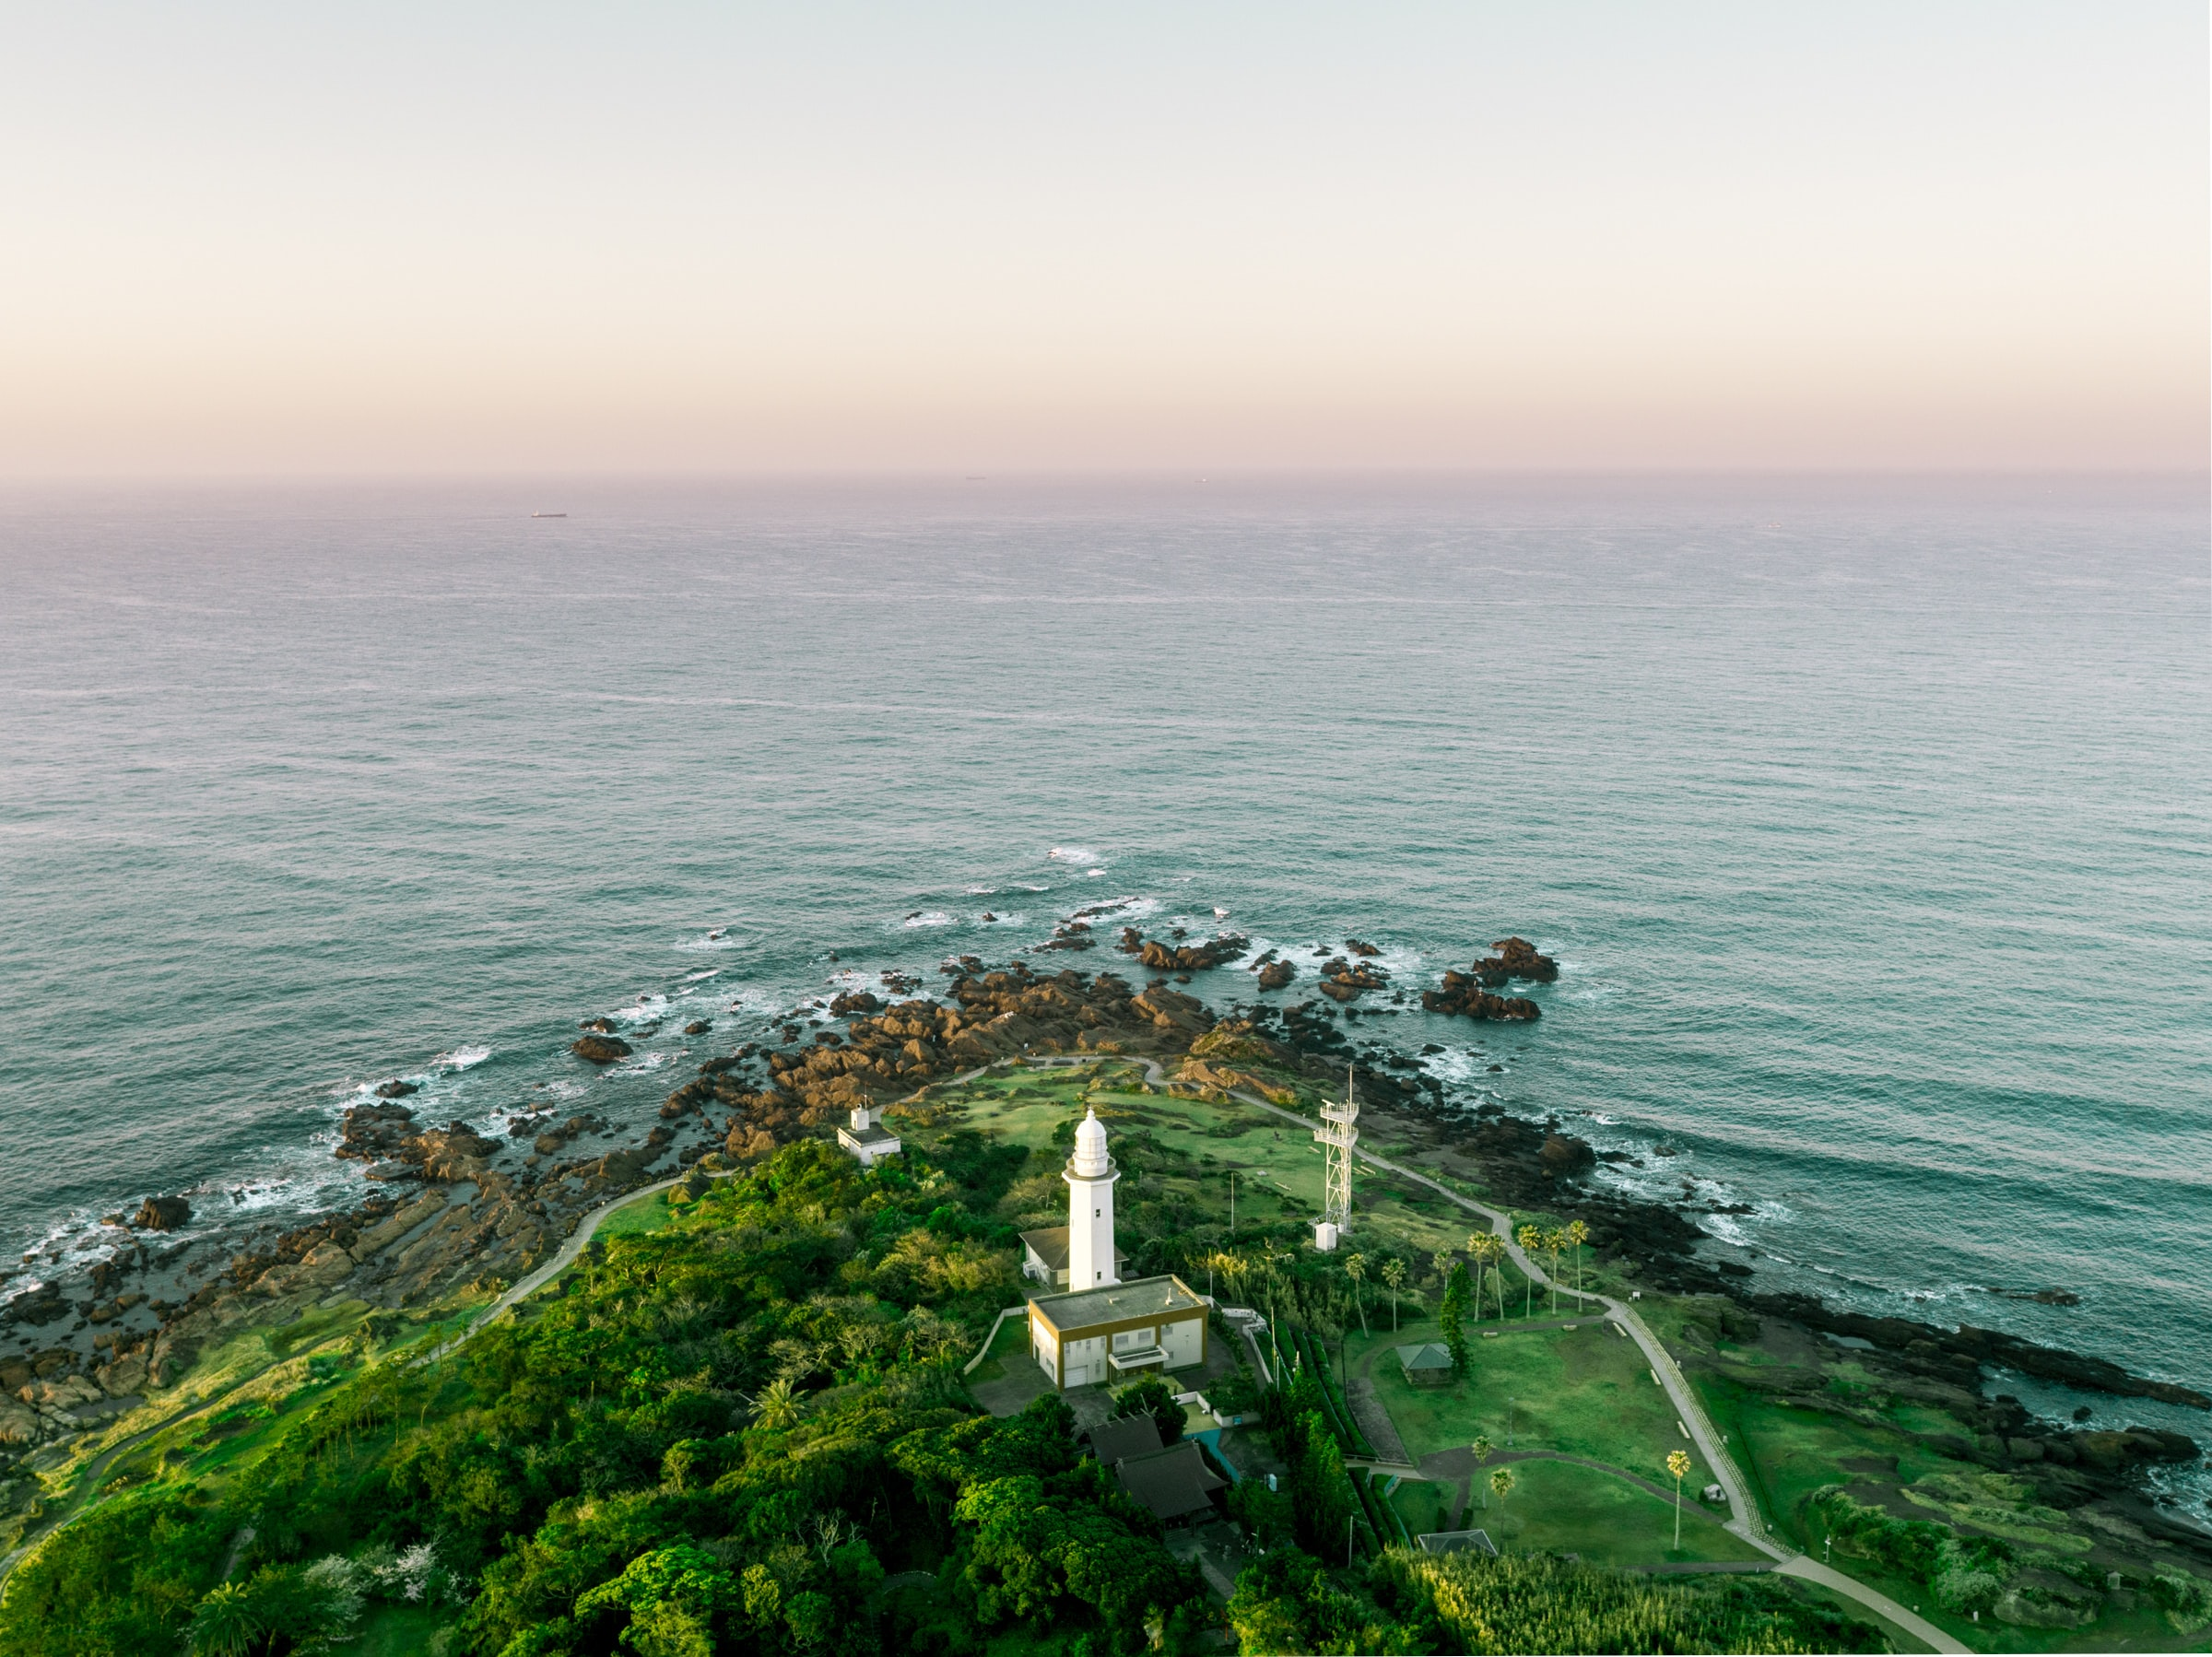 aerial photography of white tower on island near sea under white clouds